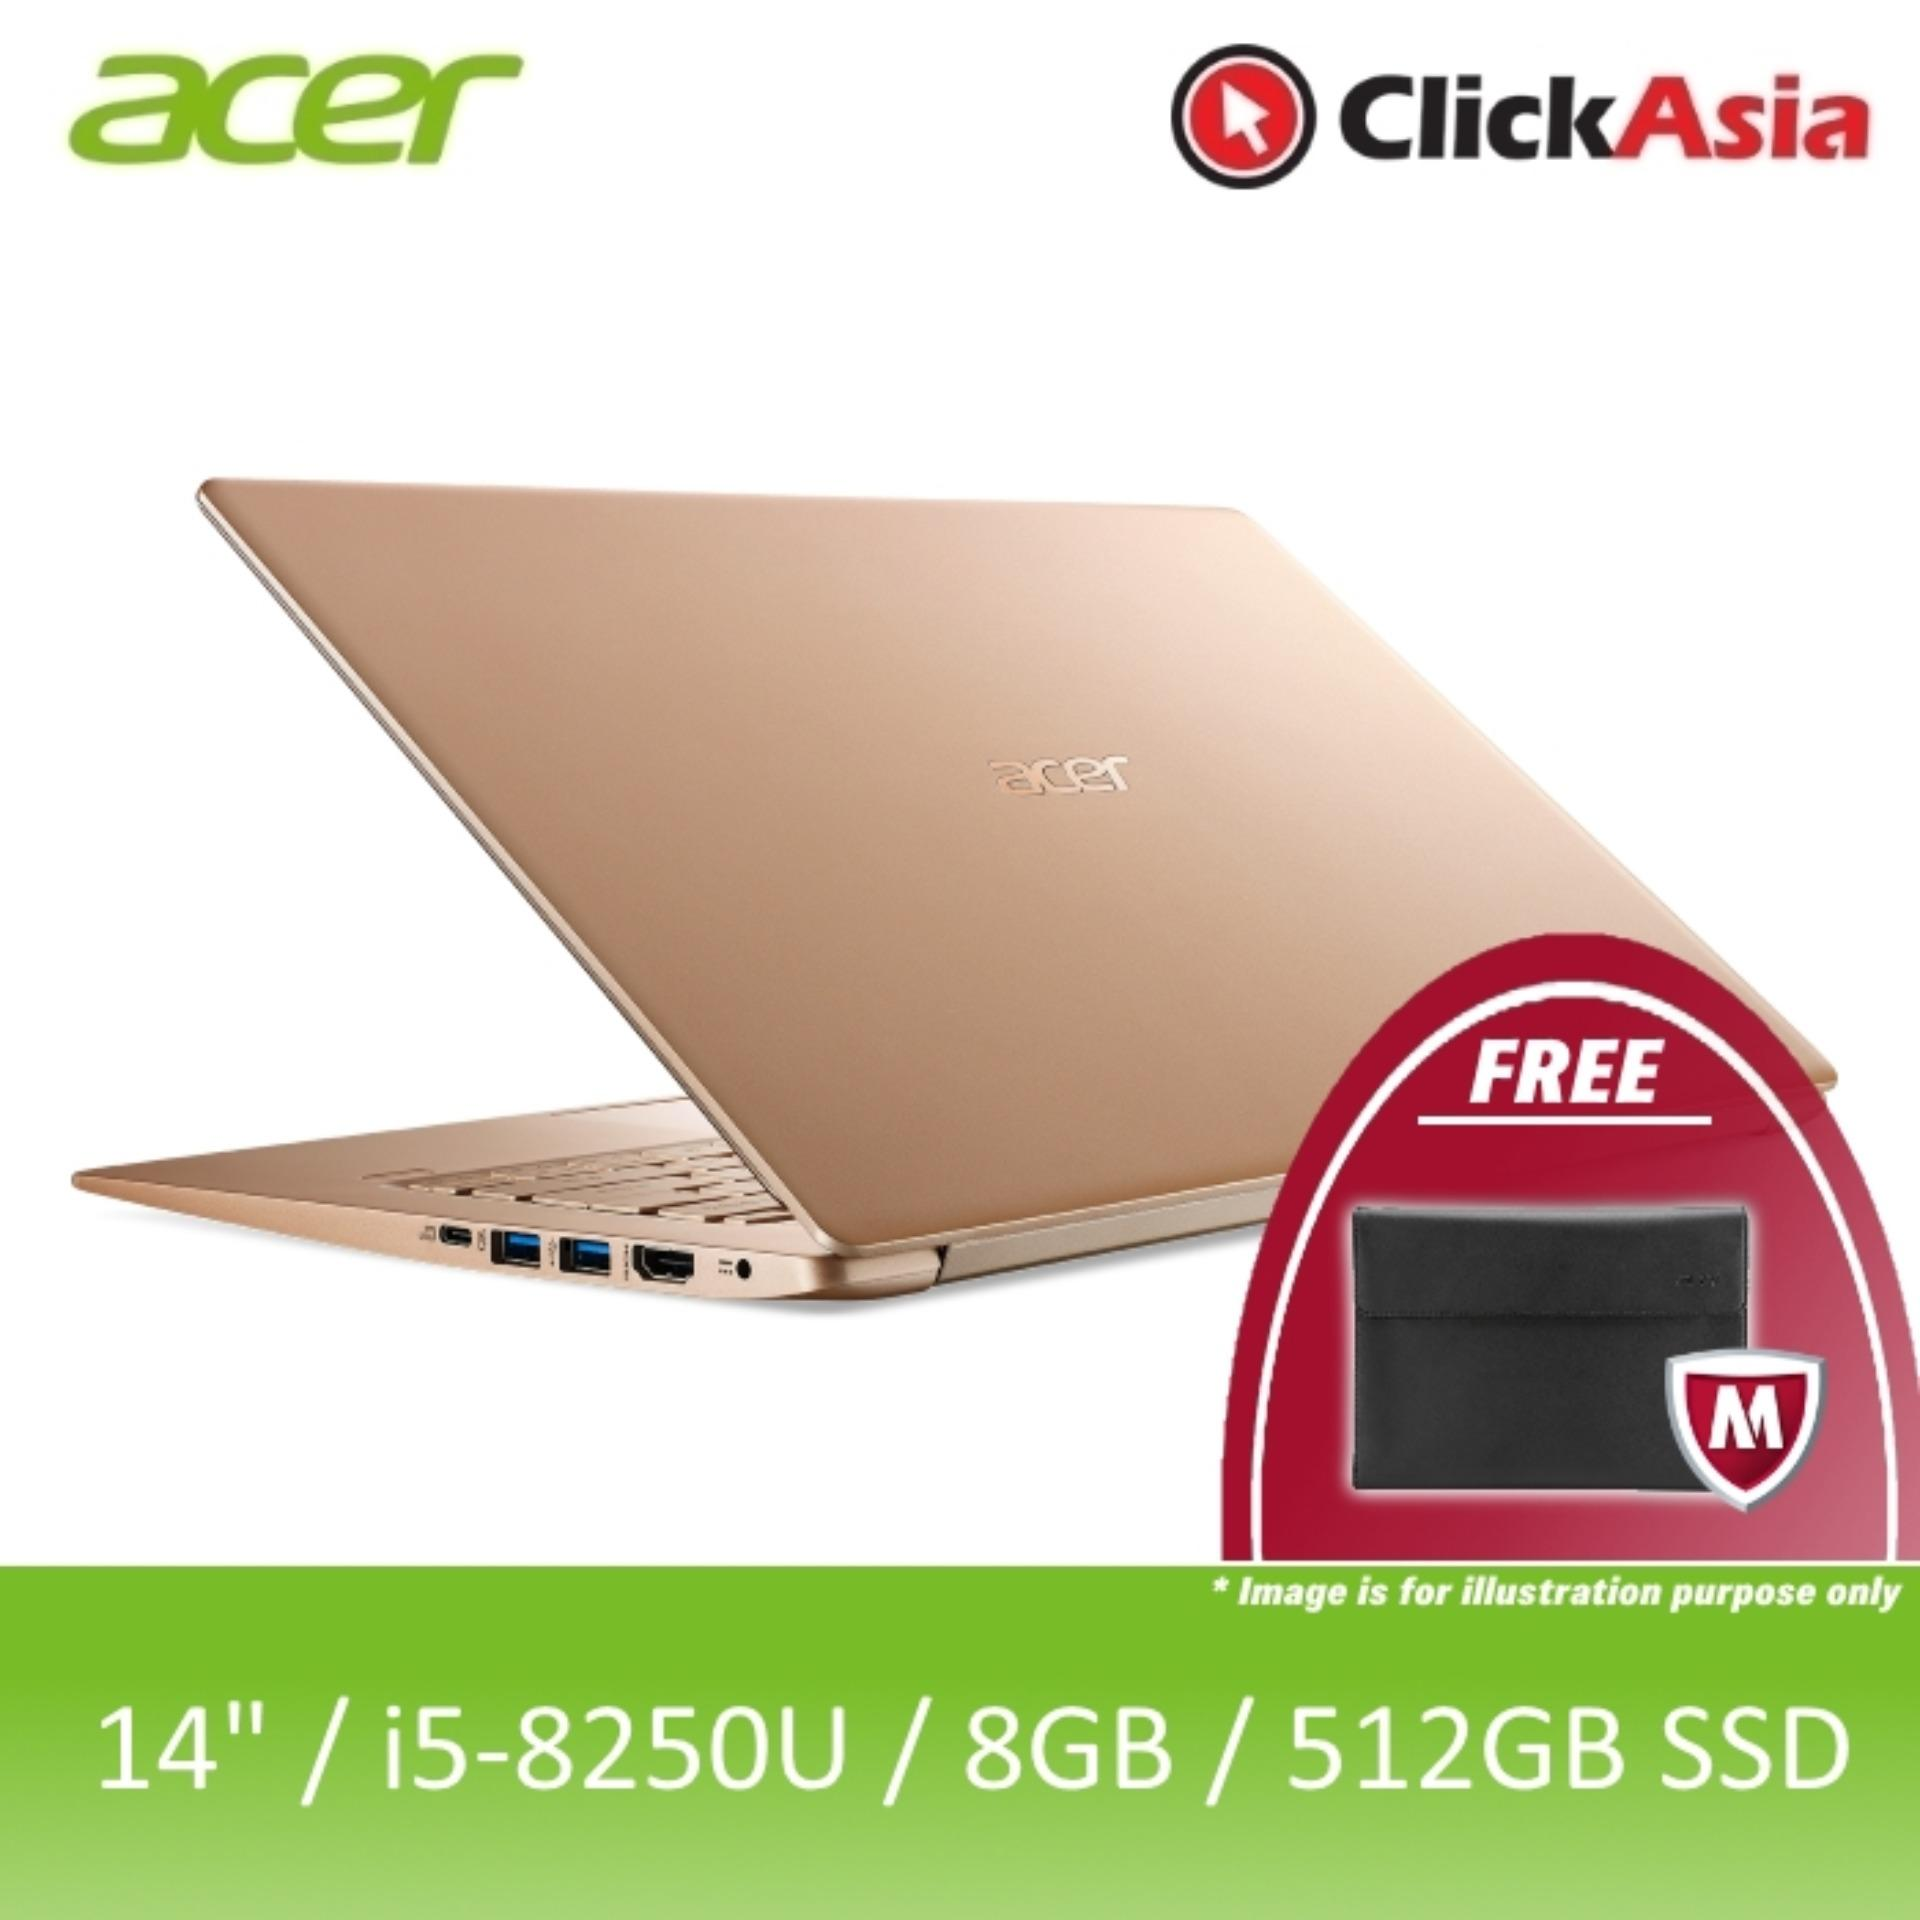 Acer Swift 5 (SF514-52T-57WC) - 14/i5-8250U/8GB DDR4/512GB SSD/UHD/W10 (Gold)